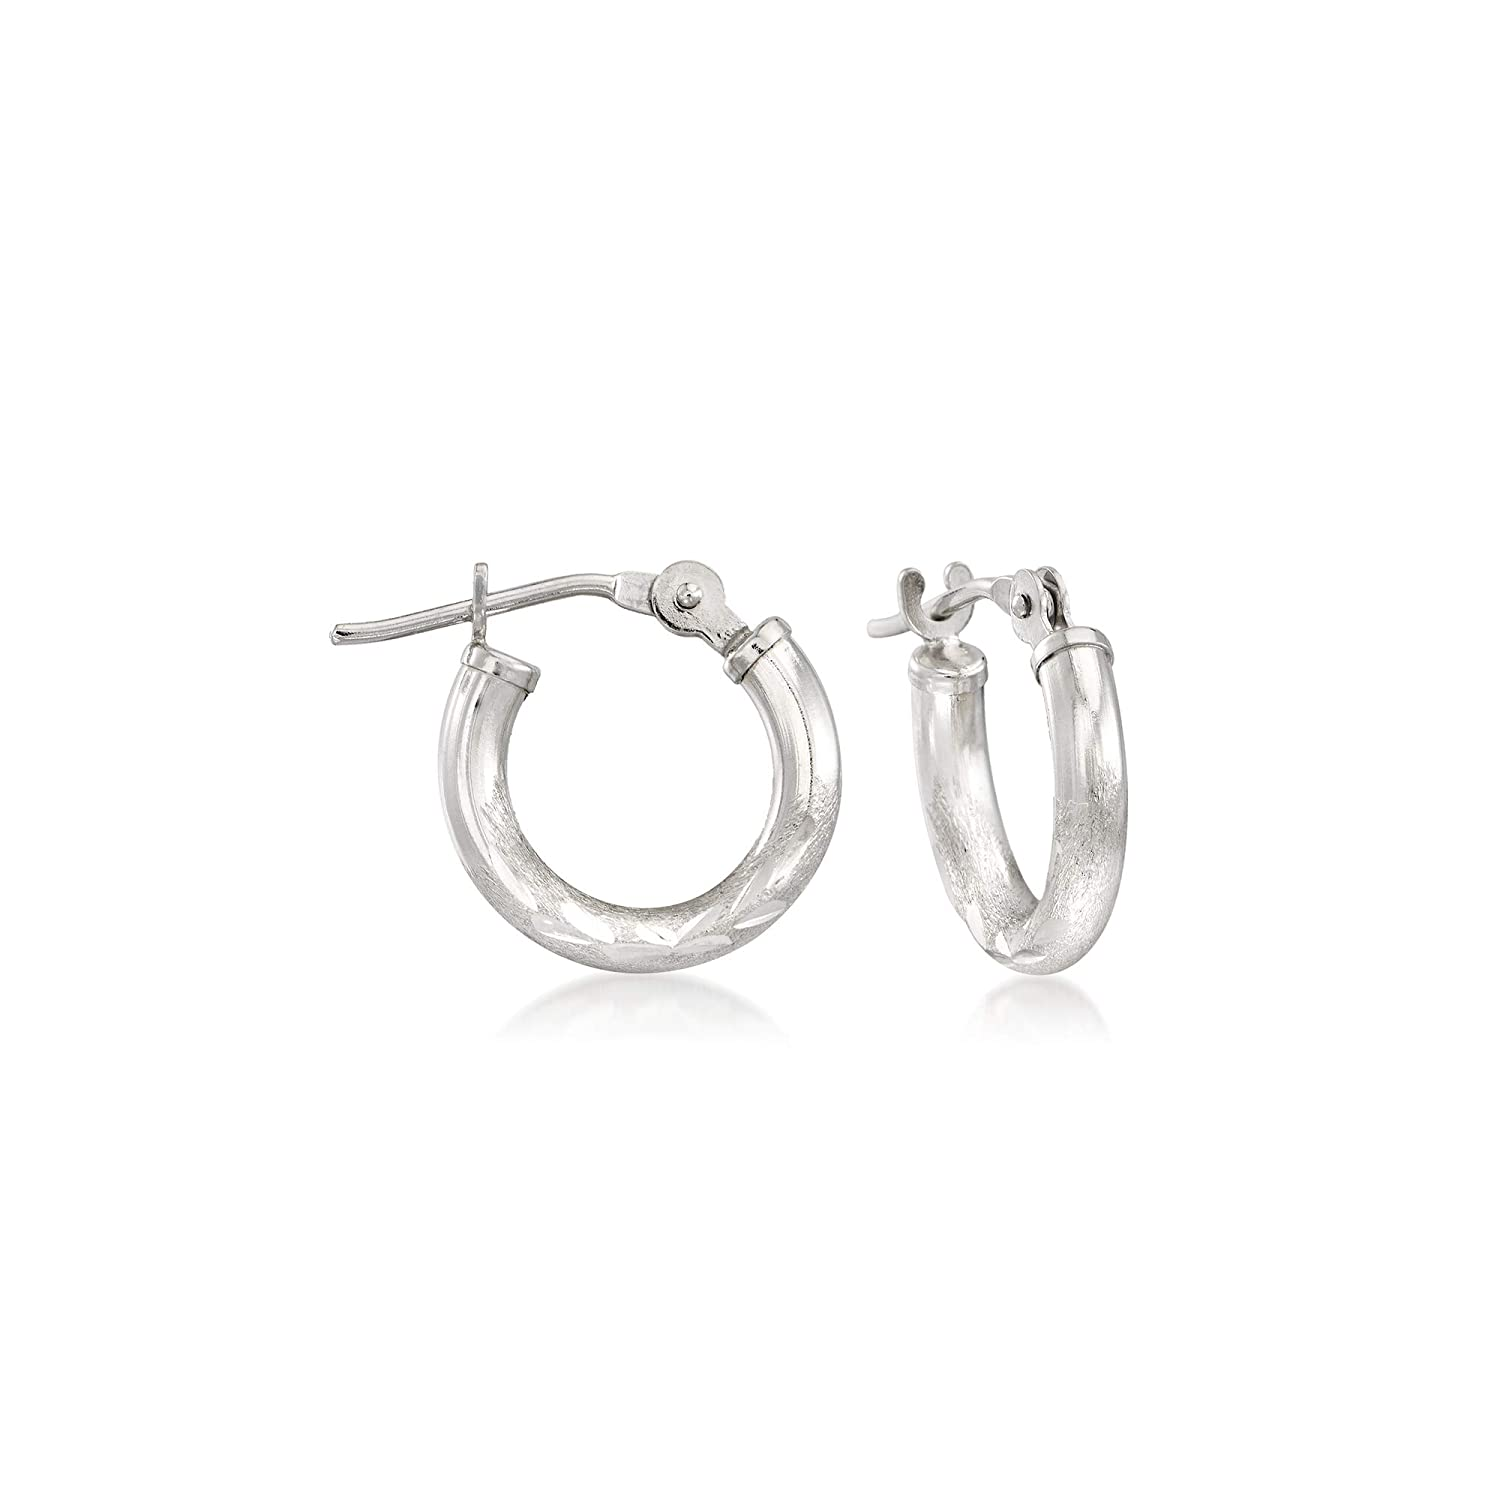 Ross-Simons Childs 14kt White Gold Diamond-Cut Huggie Hoop Earrings